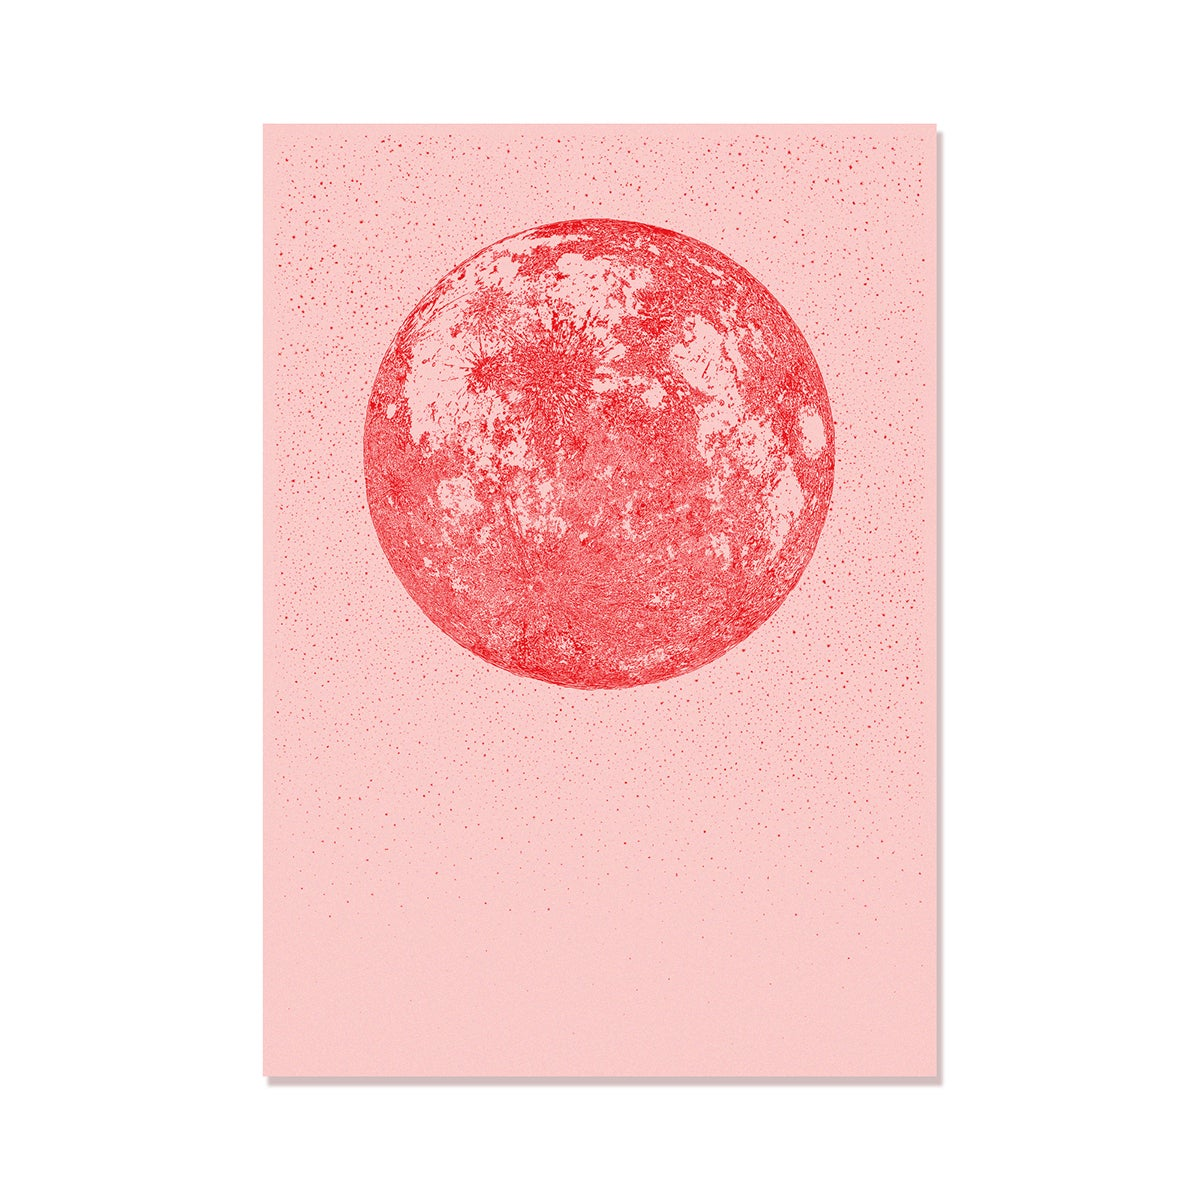 Blood Red Moon (S-RP-2)